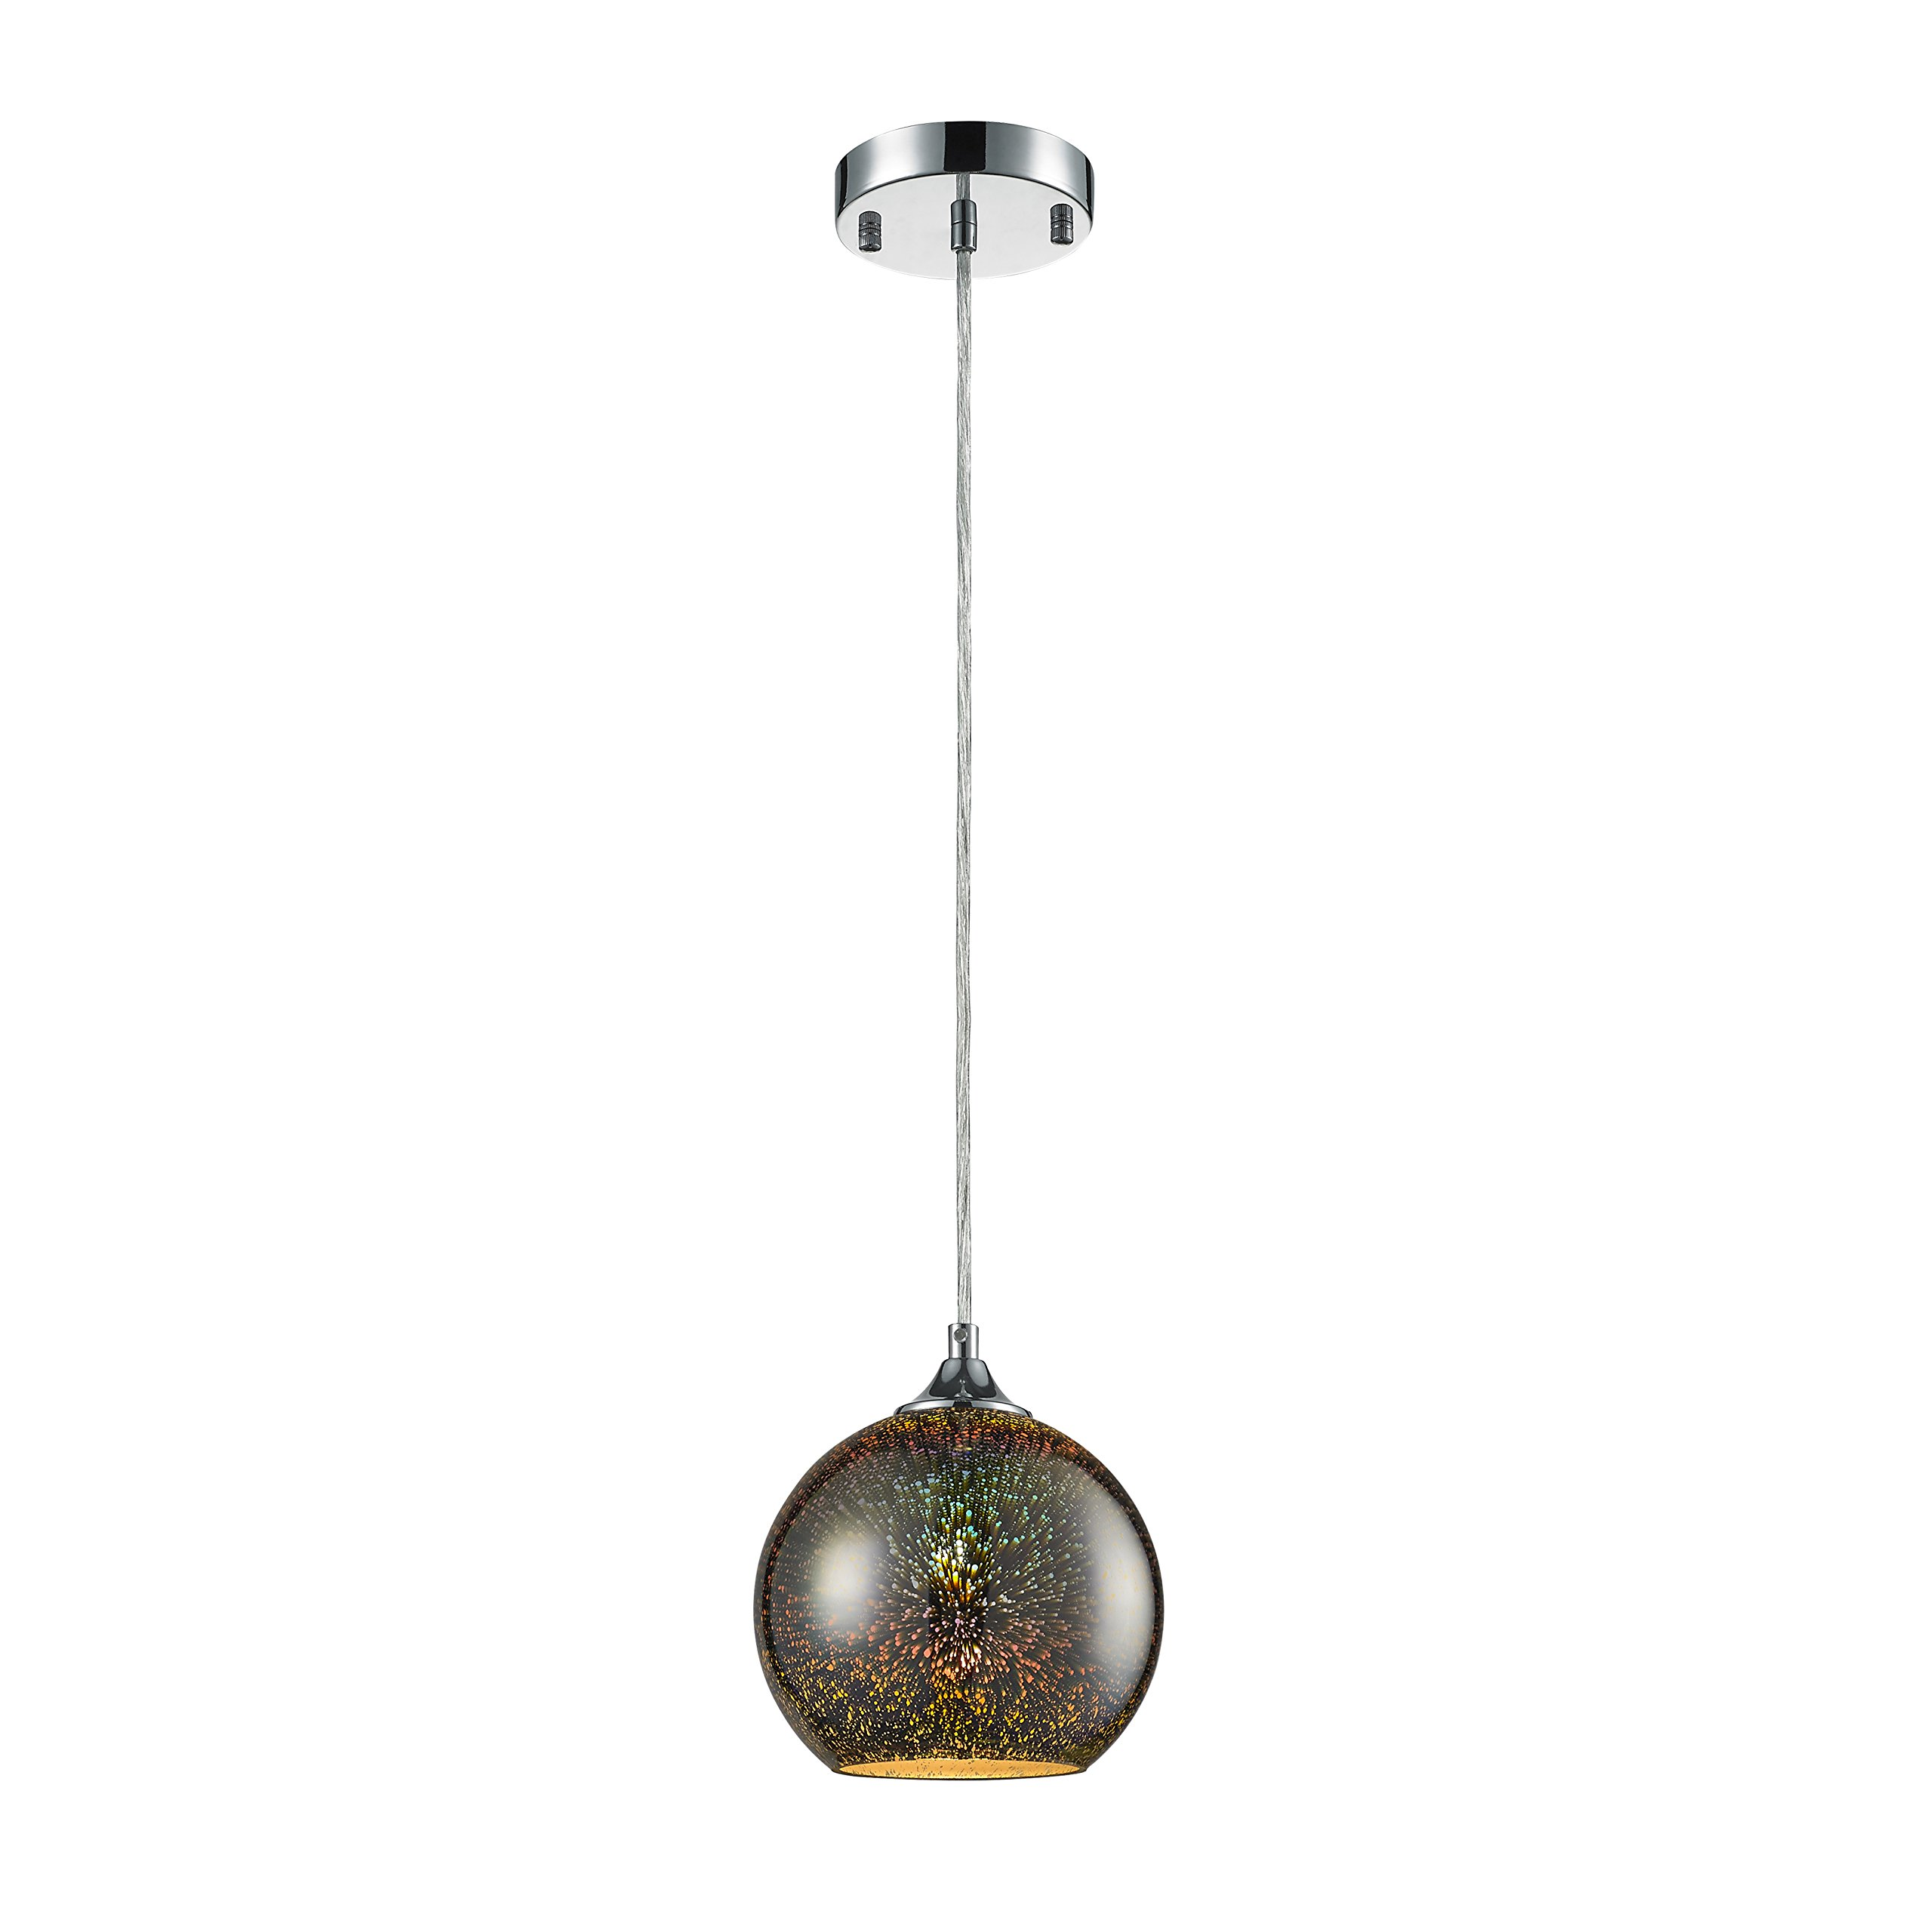 "SereneLife Home Lighting Fixture - 7.1"" Circular Sphere Shaped Dome Pendant Hanging Lamp Ceiling Light with Sculpted Glass Accent, Adjustable Length and Screw-in Bulb Socket (SLLMP11)"